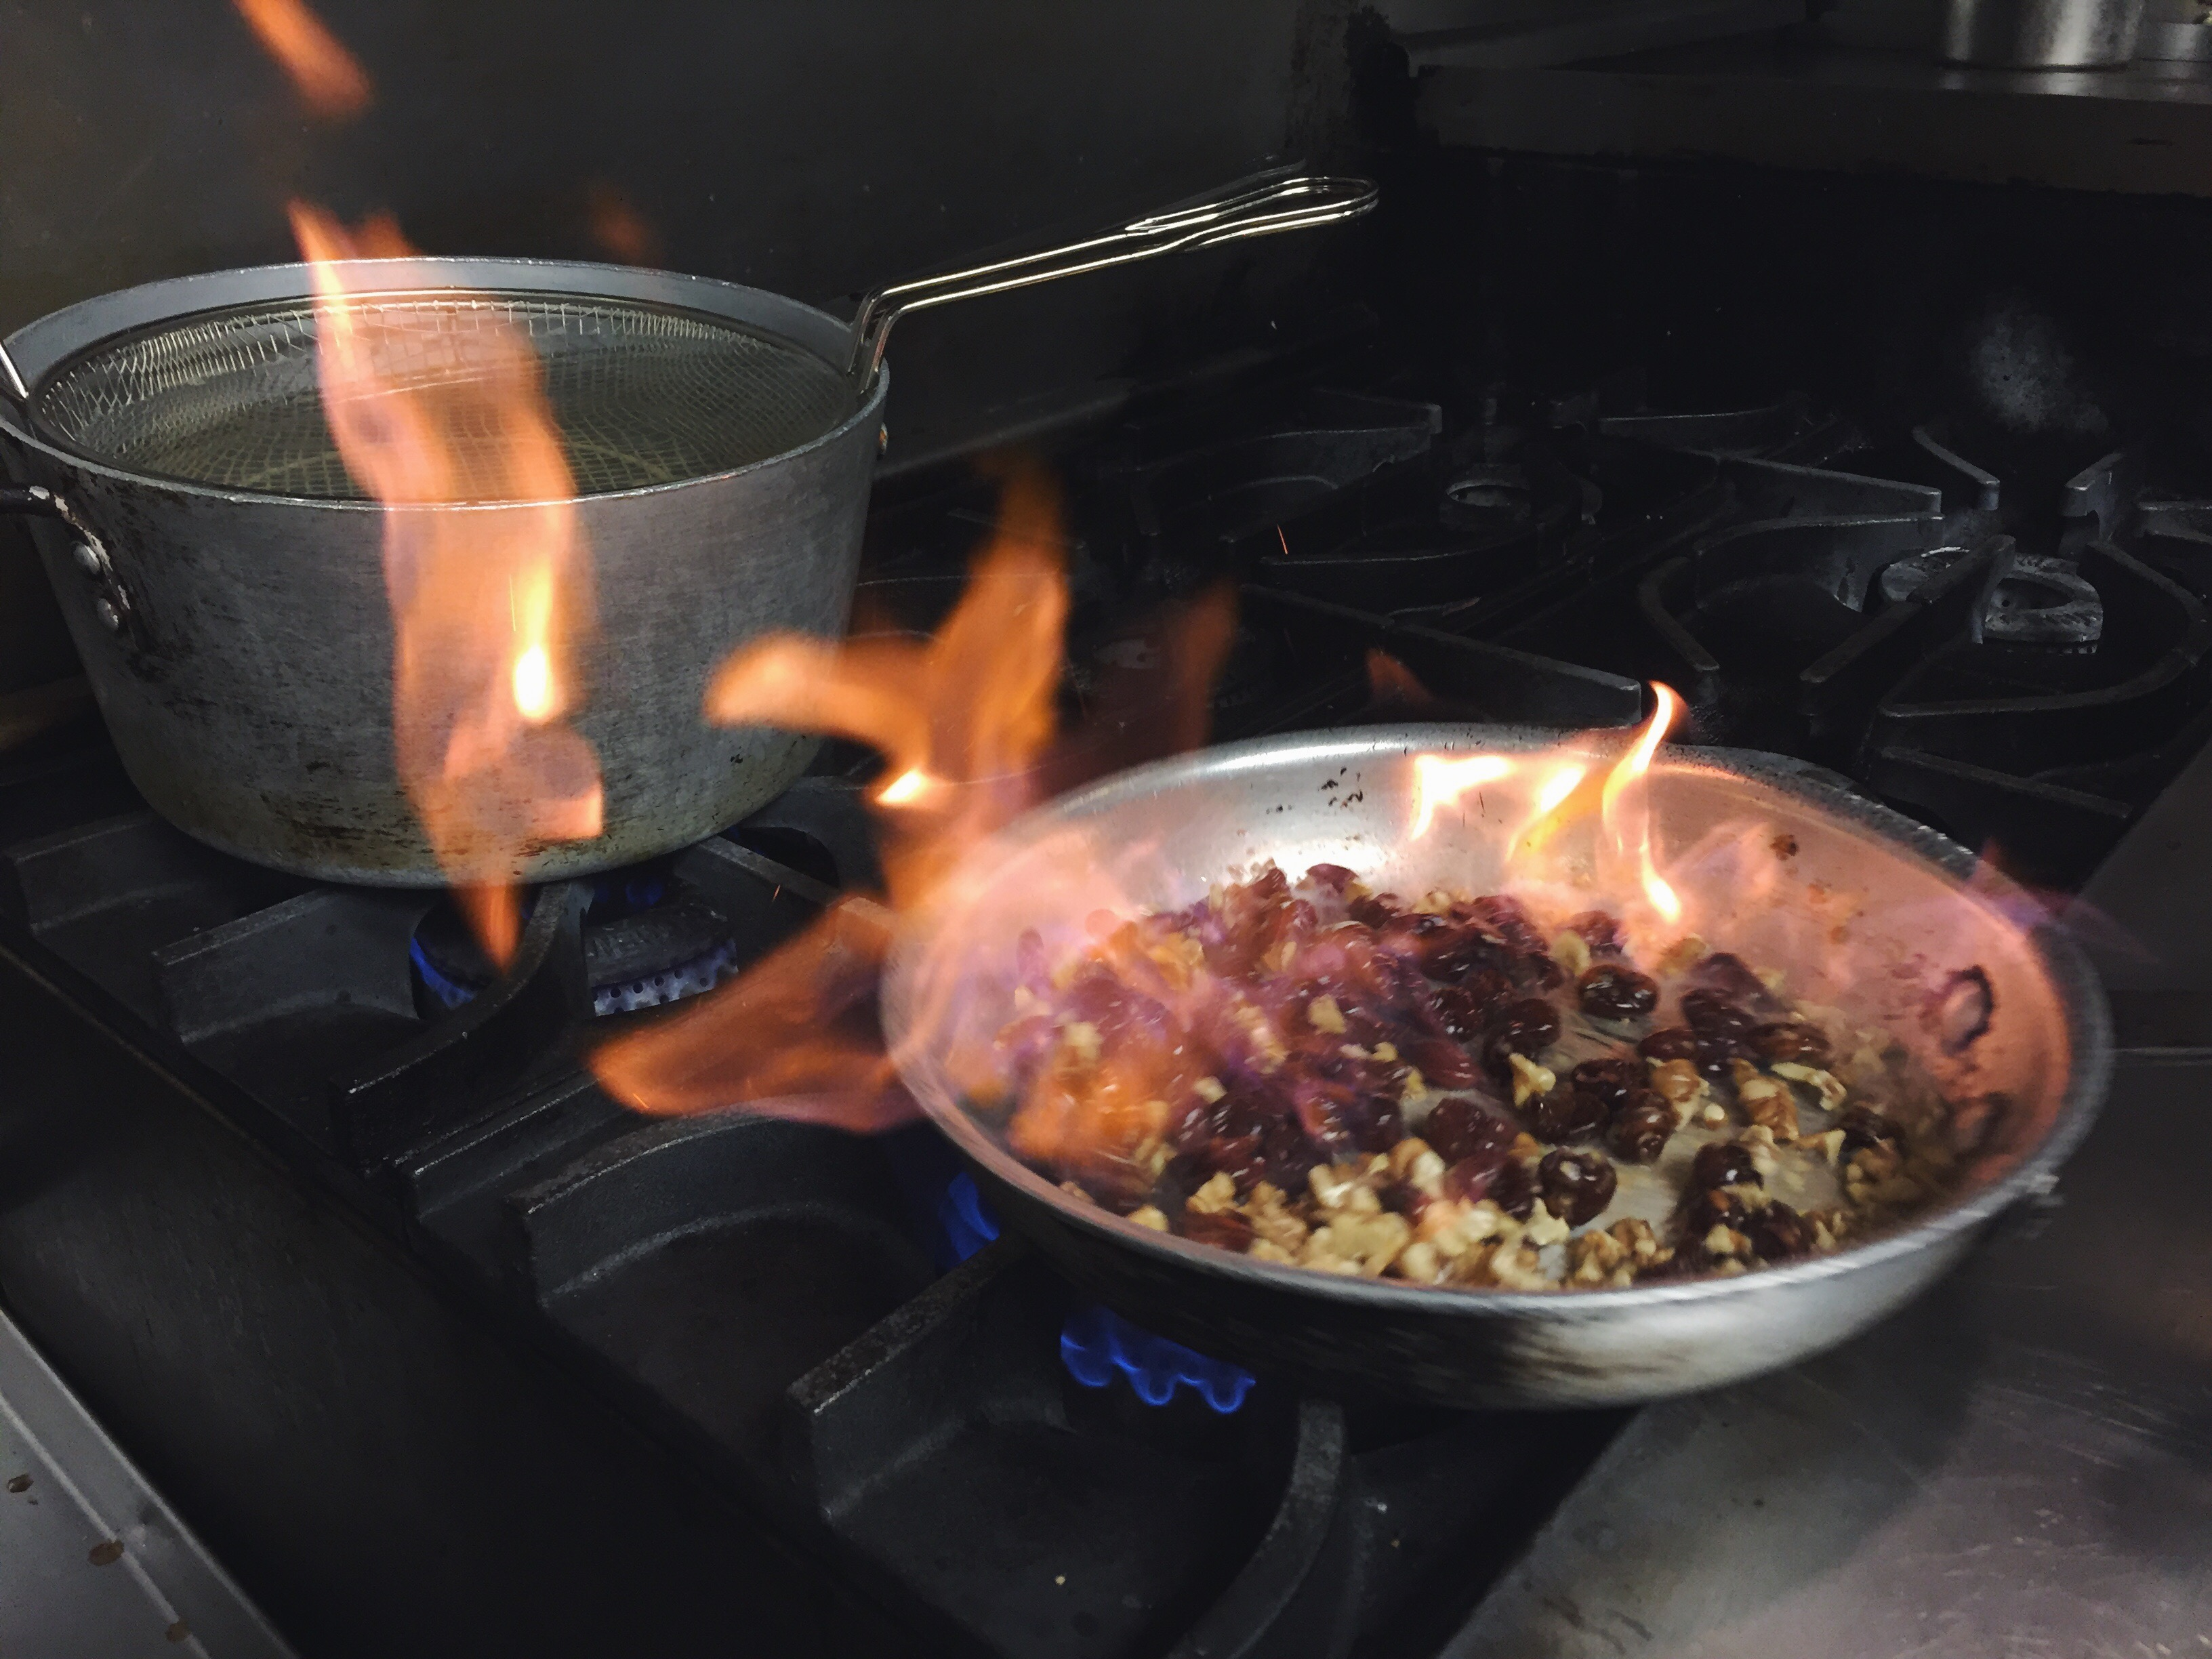 carmel's chef scott competes in return of the mac - upland brewing co.